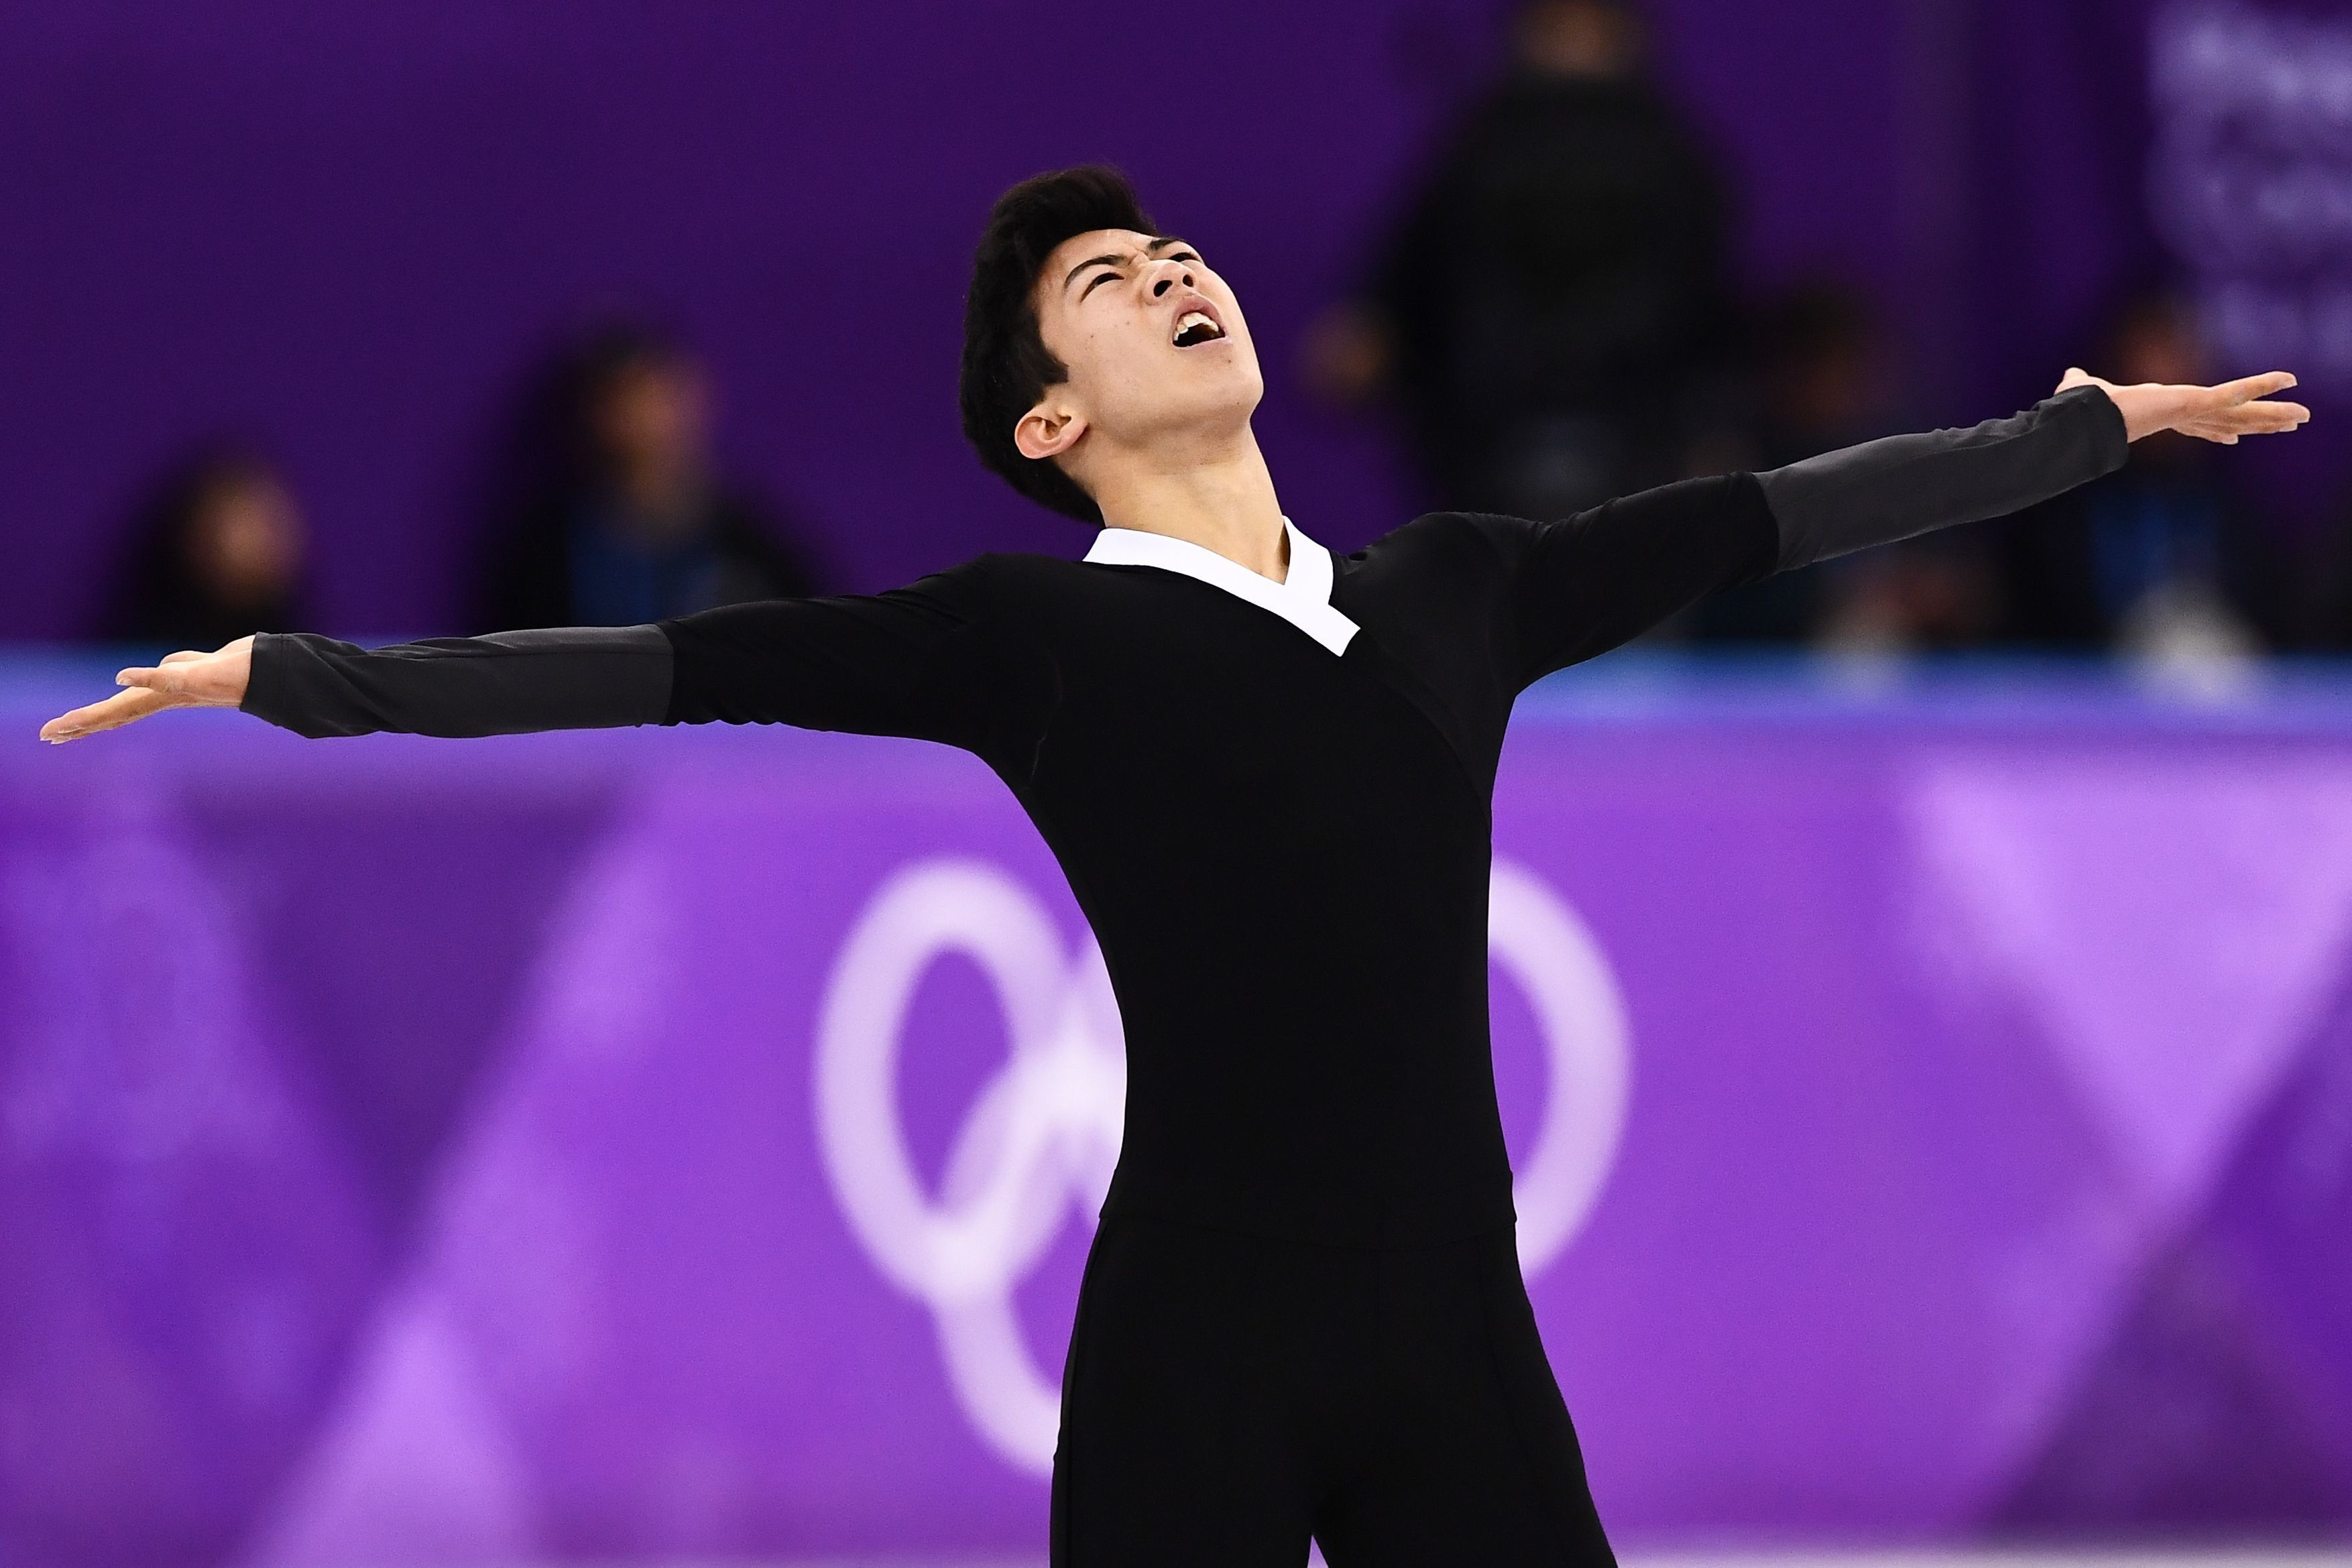 Nathan Chen competes in the men's single free skate Saturday in Pyeongchang, South Korea.